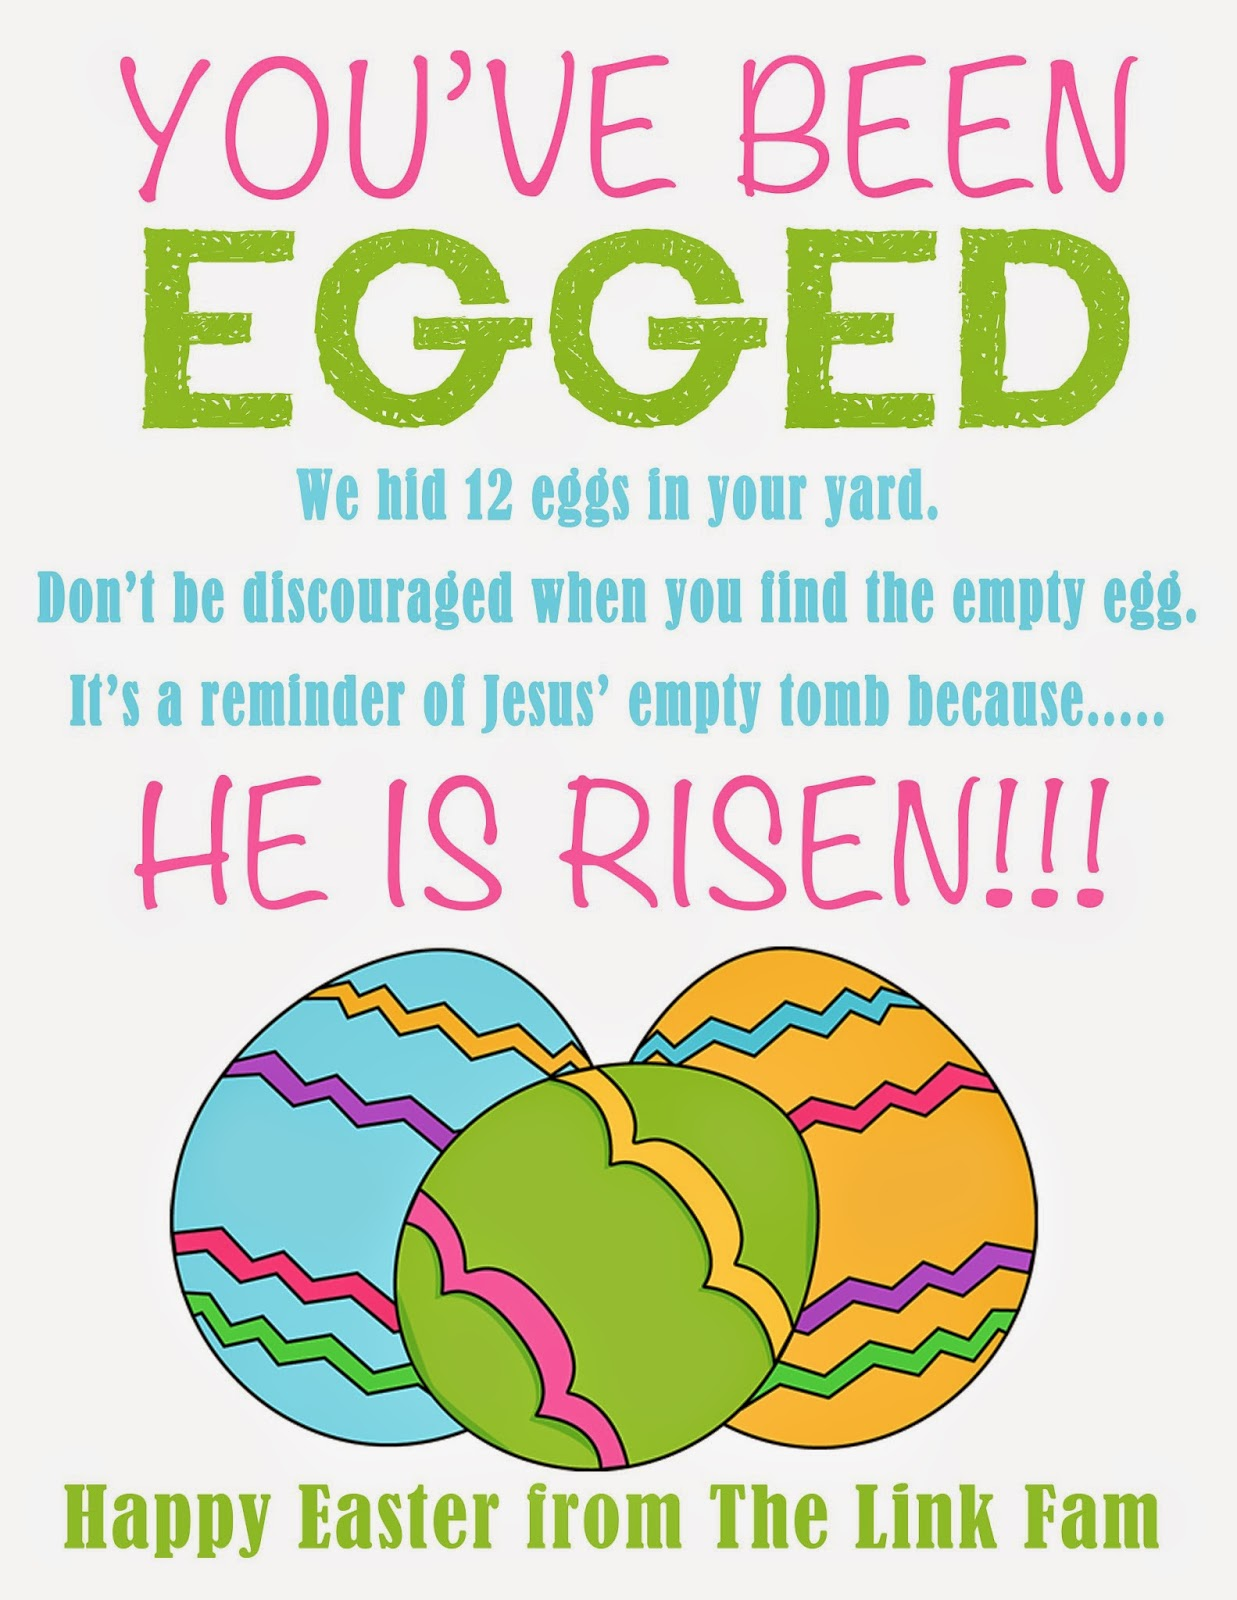 image regarding You've Been Egged Printable titled The Hyperlink Dwelling: Youve Been EGGED + a no cost printable